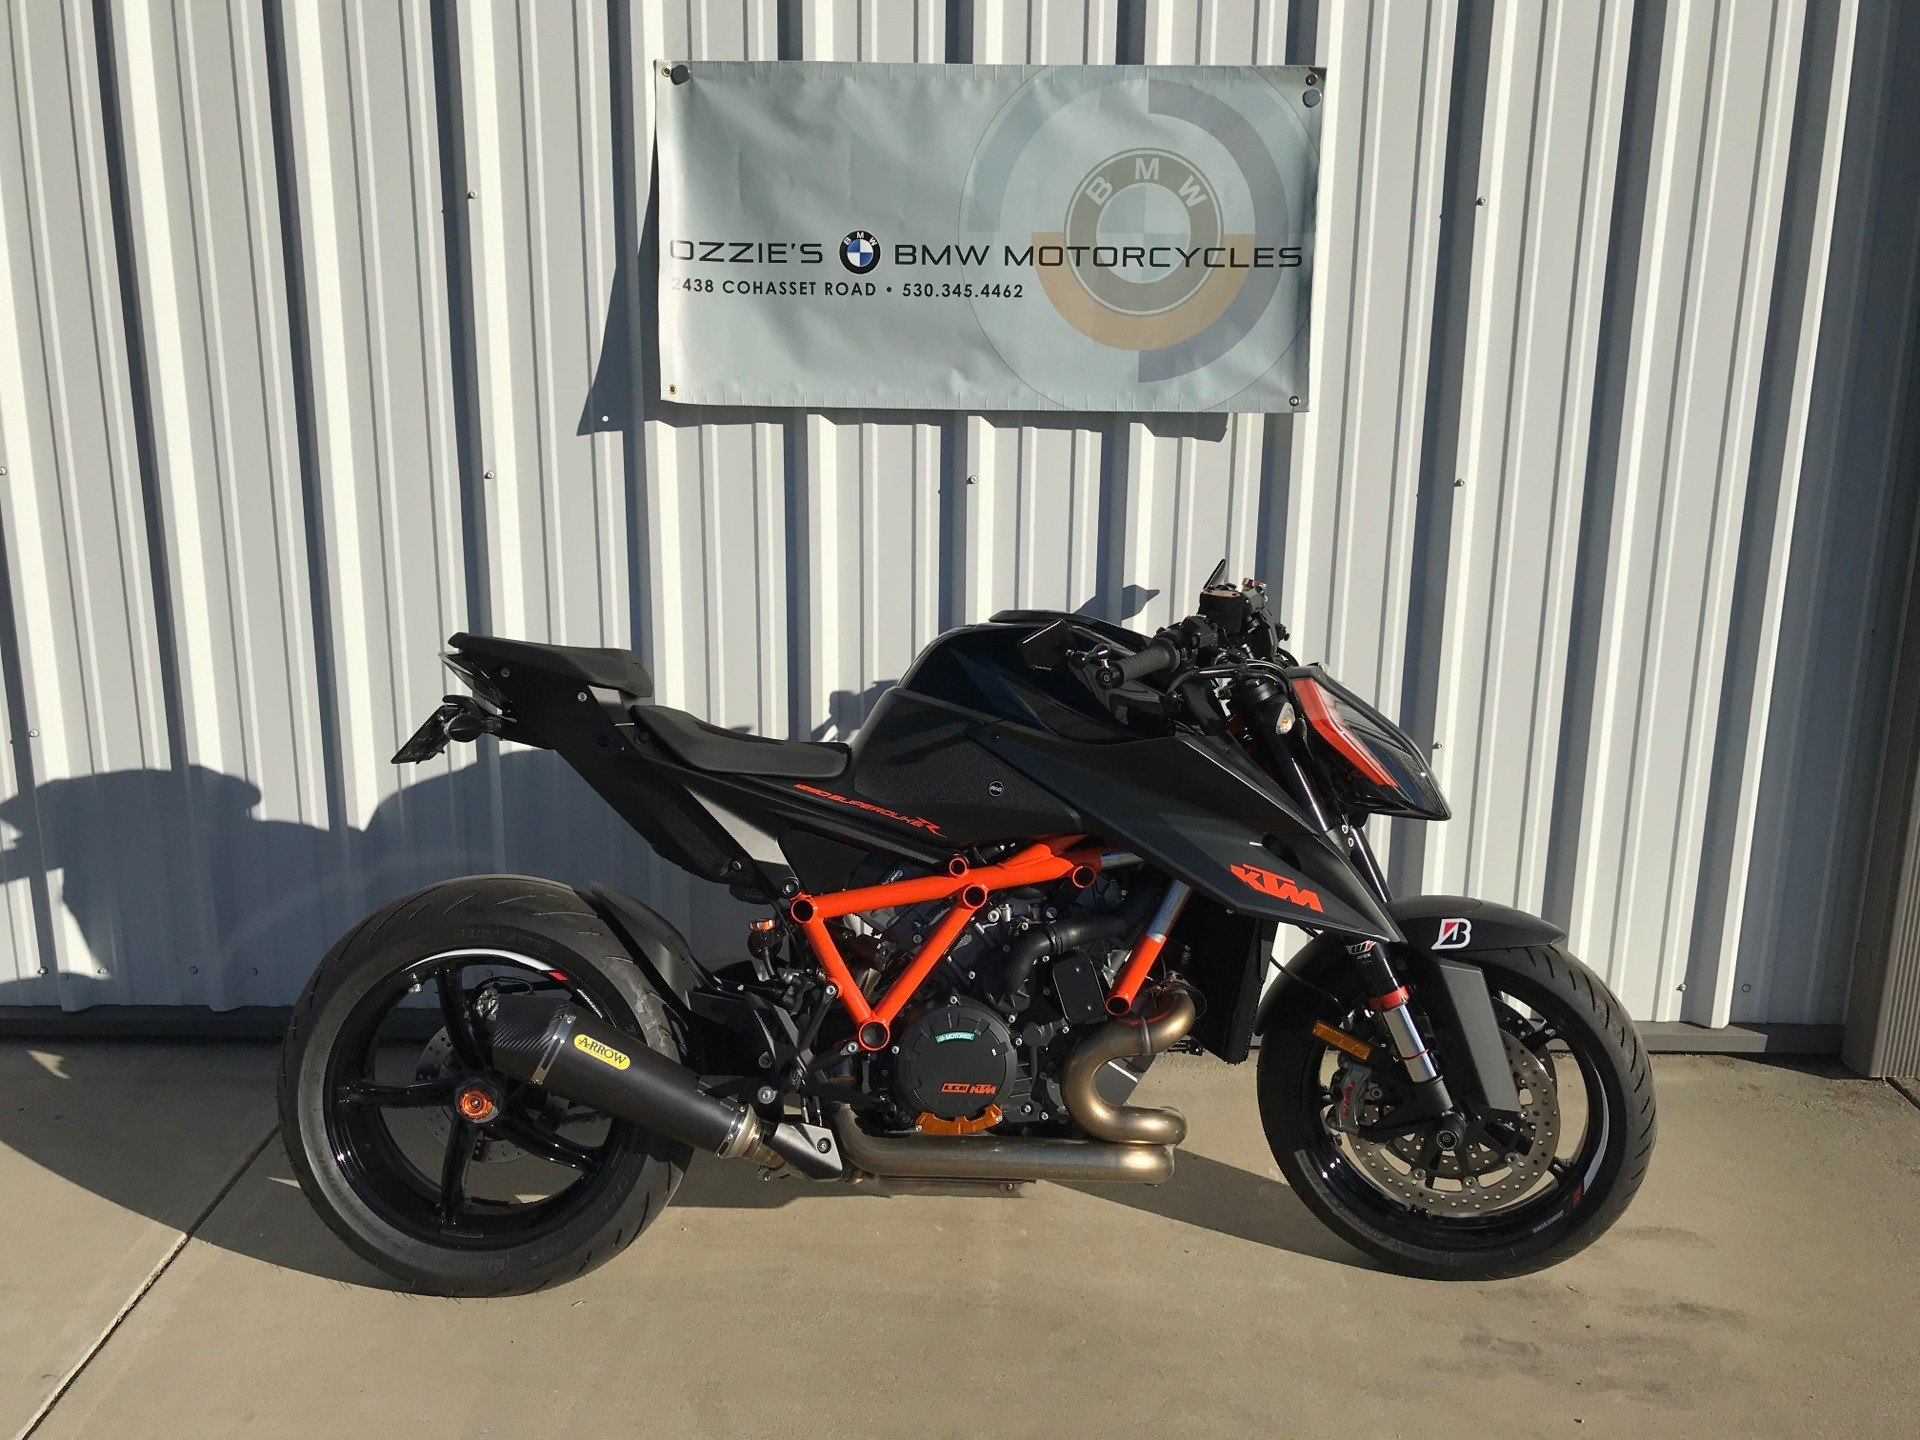 2020 KTM 1290 Super Duke R in Chico, California - Photo 1